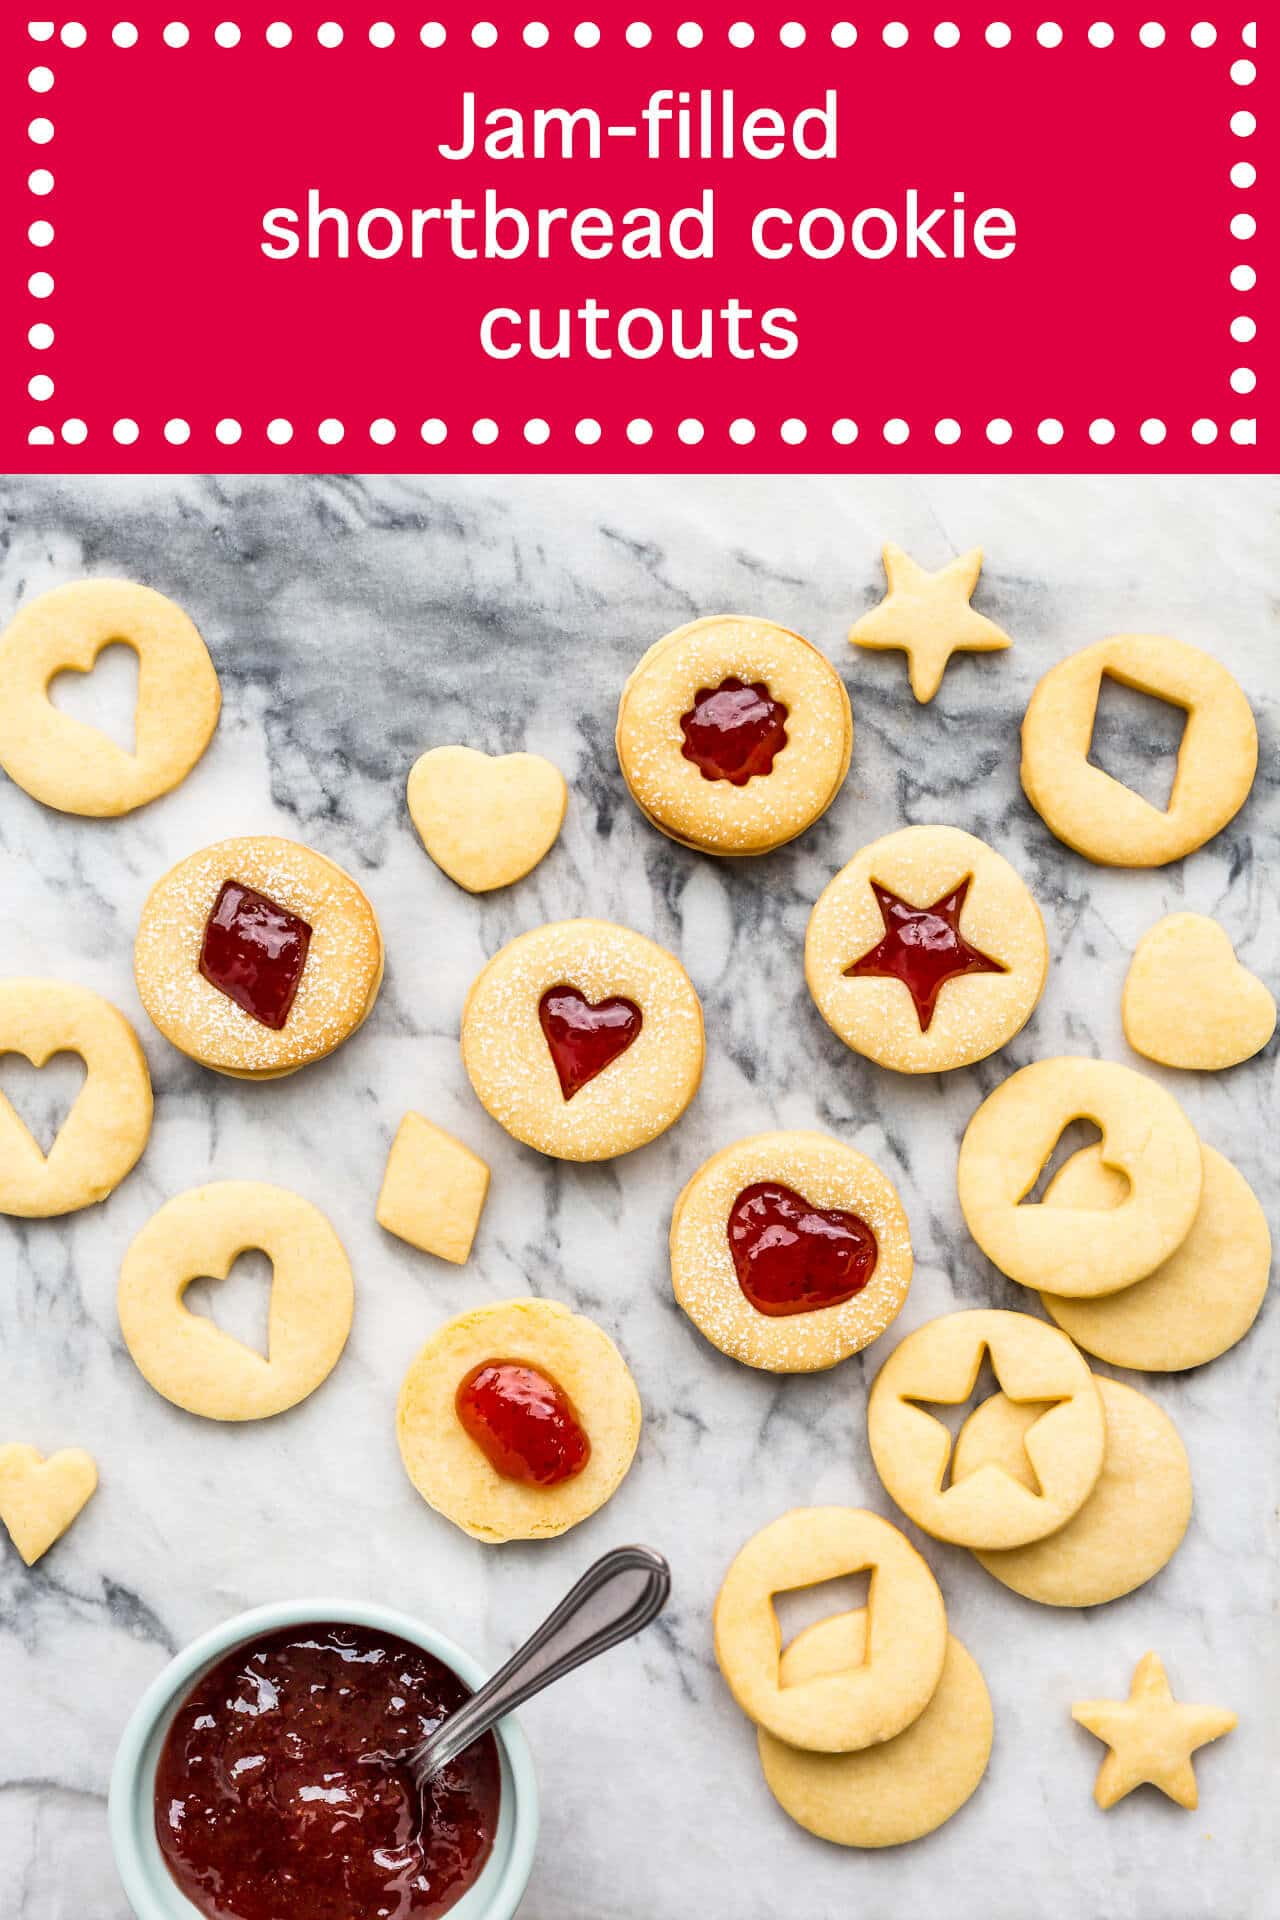 jam filled shortbread cutout cookies that hold their shape sandwhiched with strawberry jam and a bowl of jam with a spoon